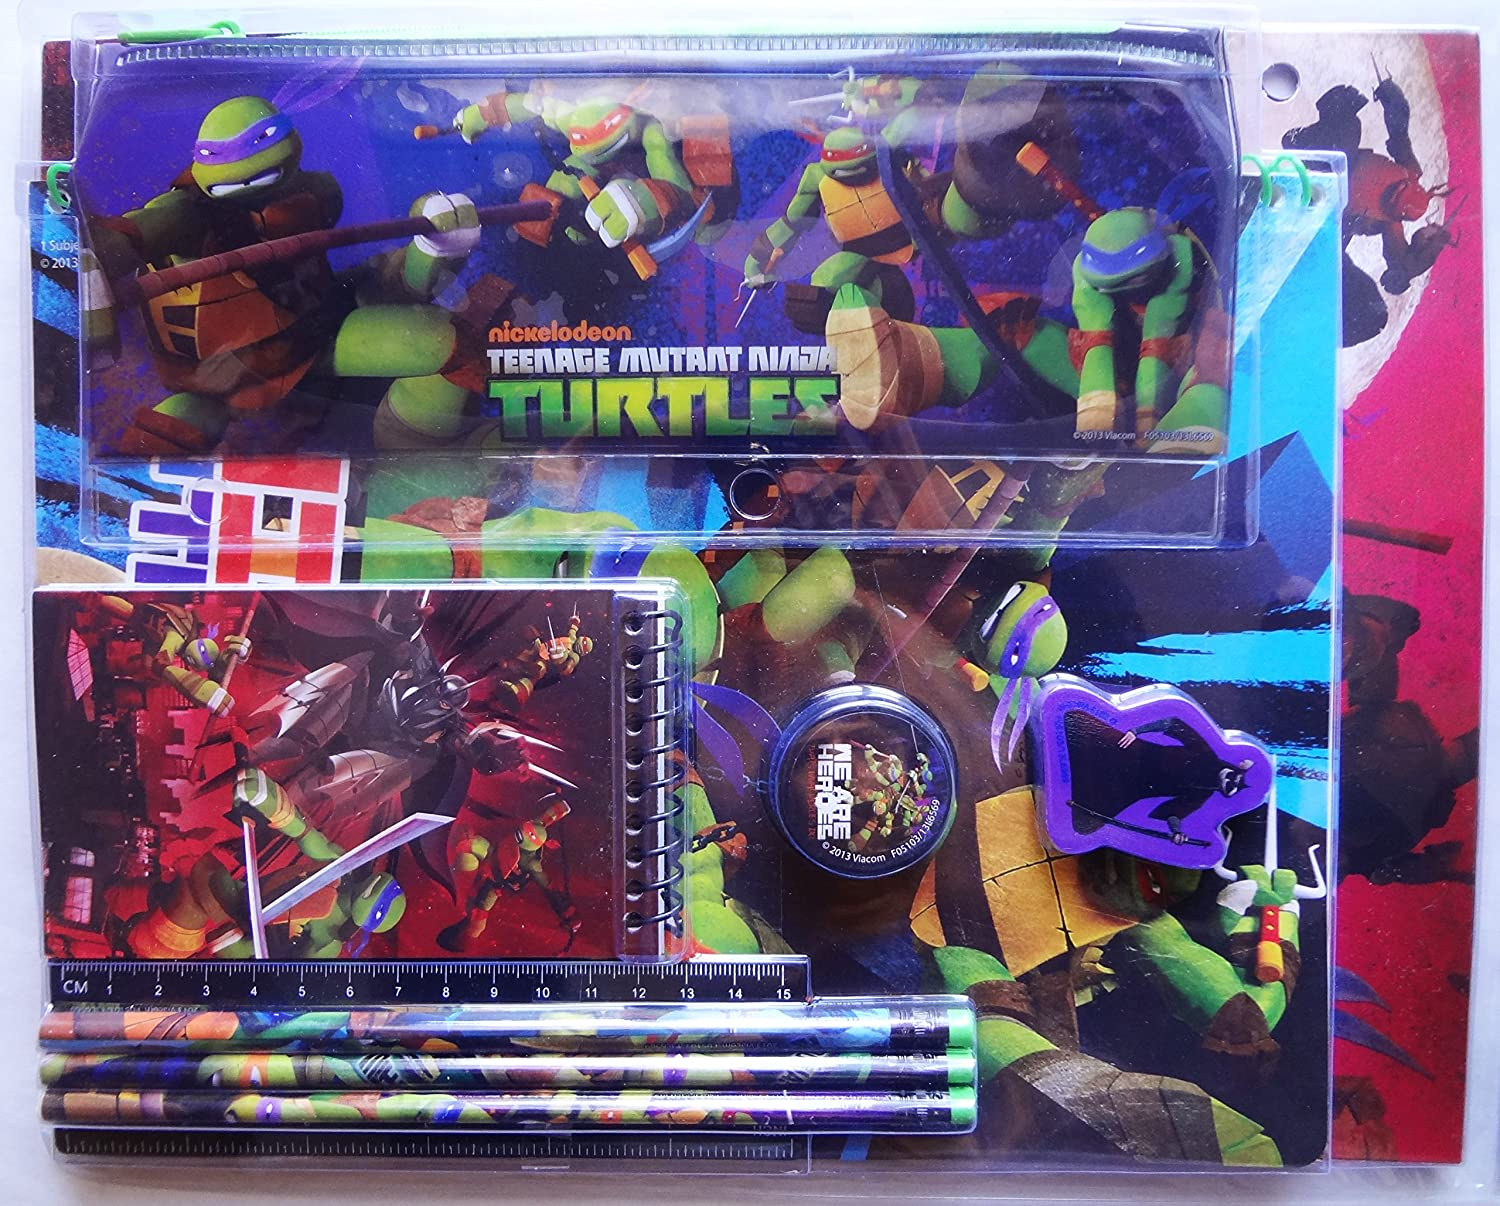 Amazon.com: Teenage Mutant Ninja Turtles 11 pieza Papelería ...